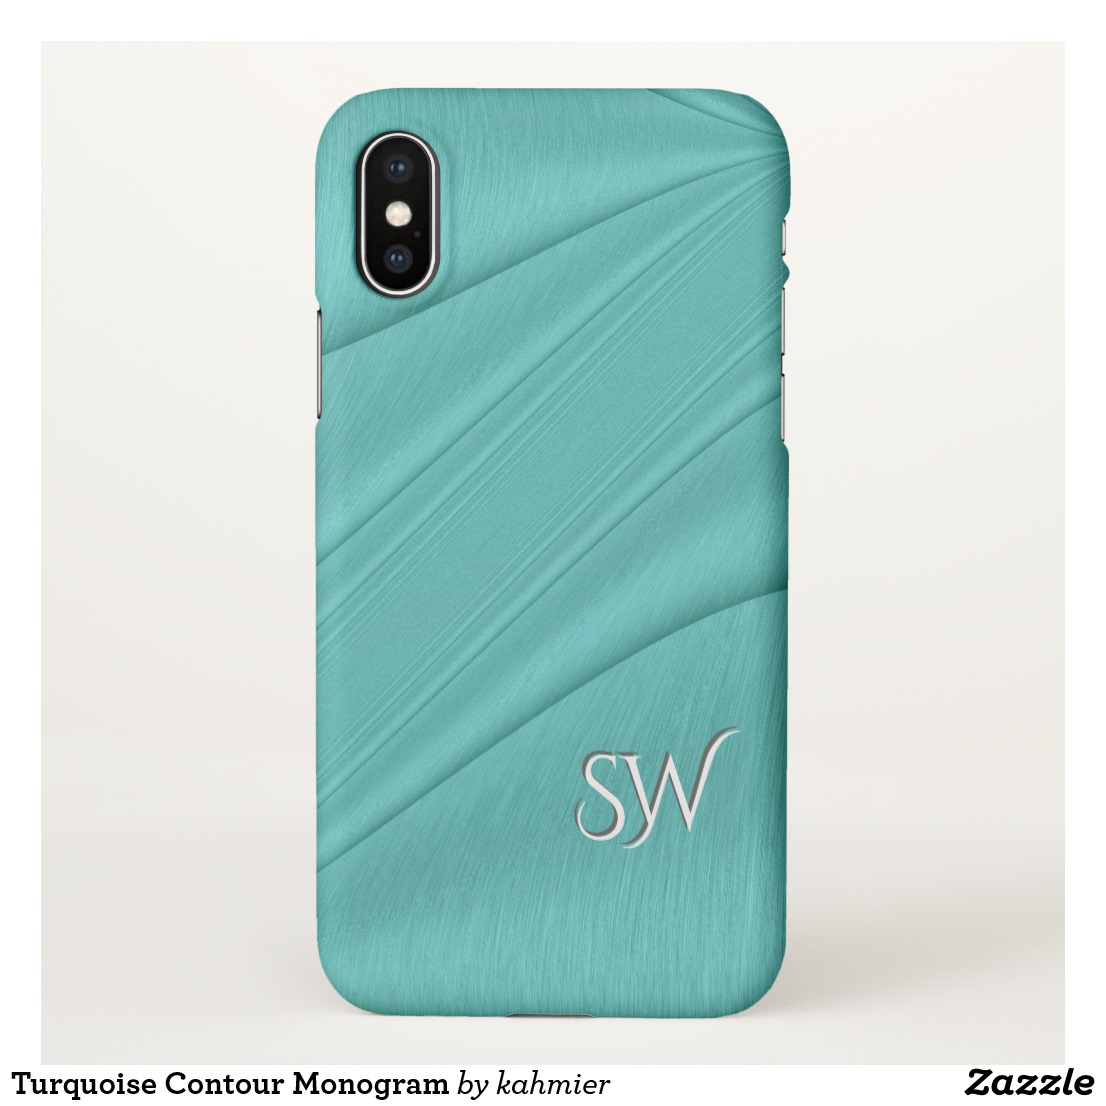 Turquoise Contour Monogram iPhone Case